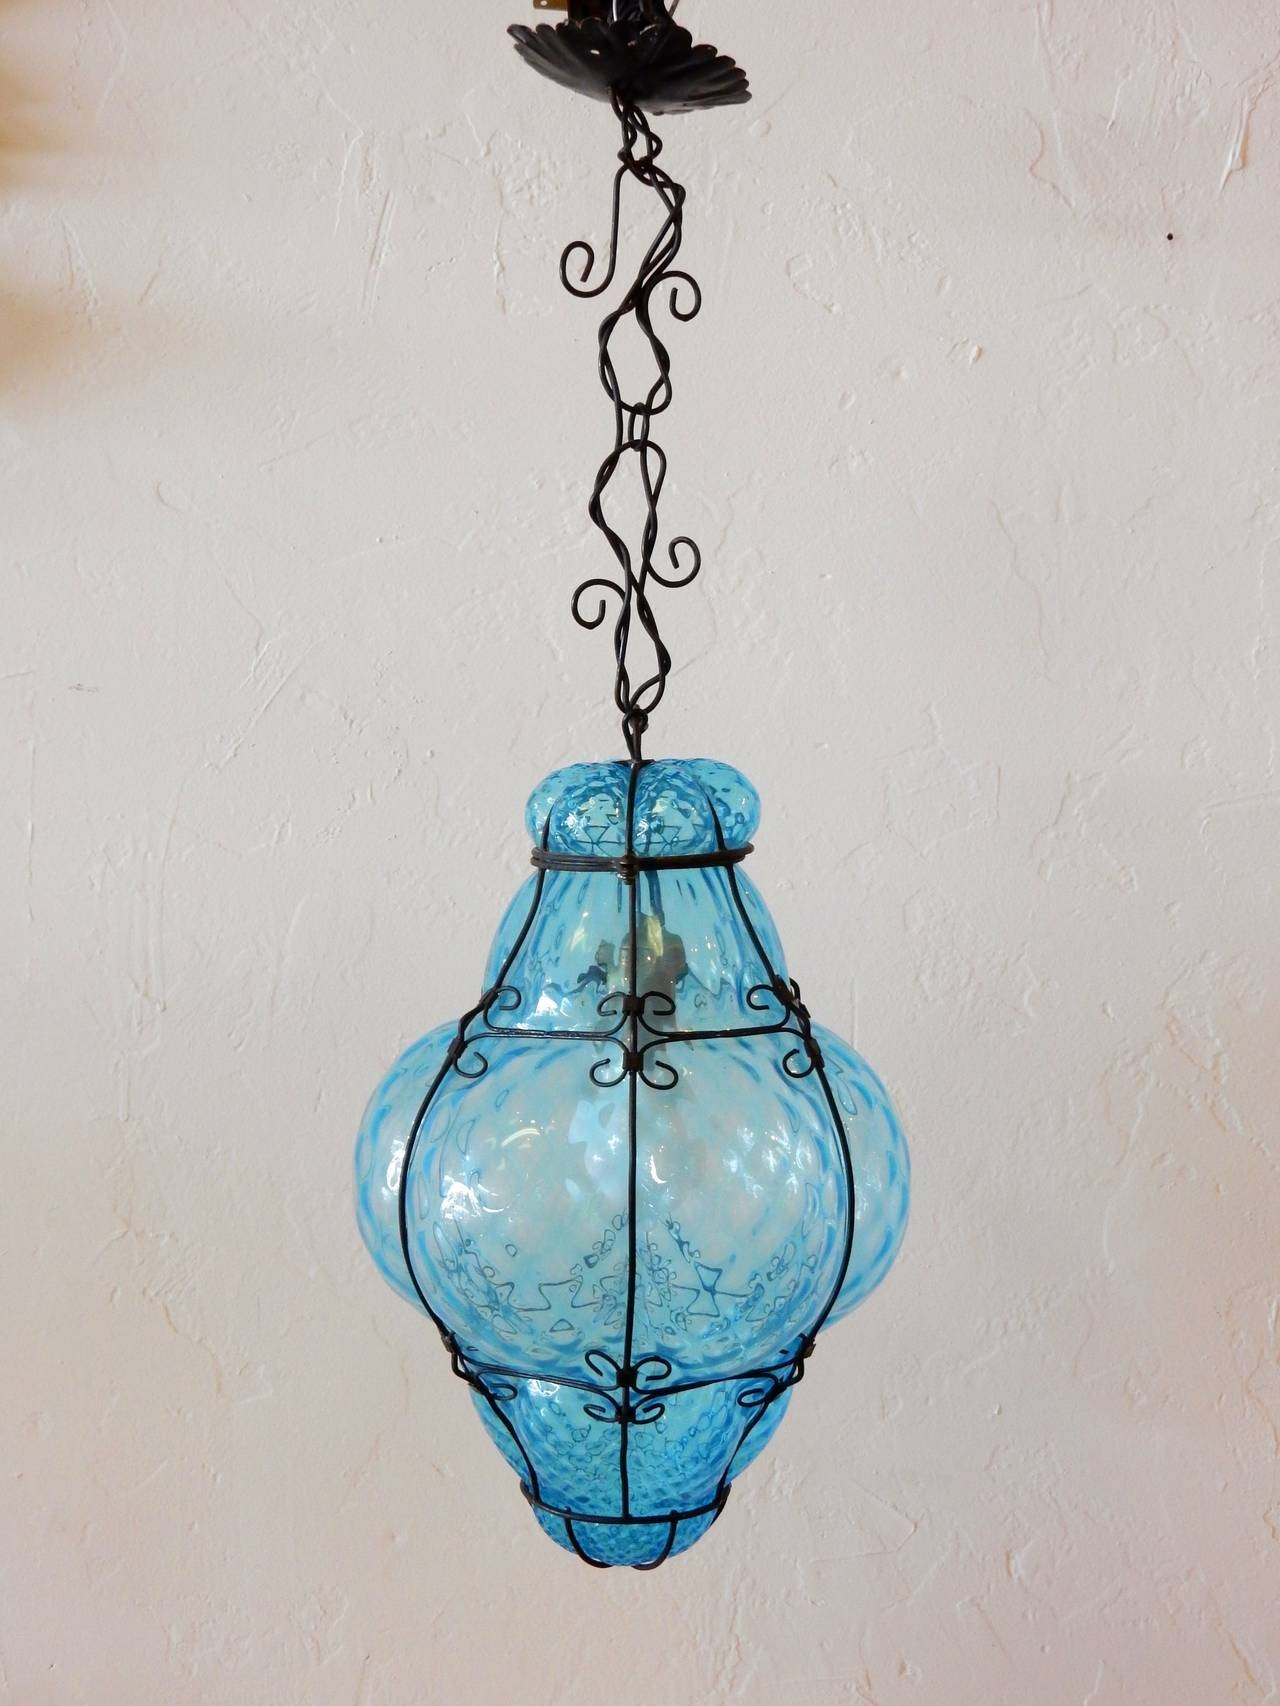 Italian Cage Art Glass Pendant Lampseugso In Aqua Blue At 1Stdibs inside Turquoise Blue Glass Pendant Lights (Image 3 of 15)